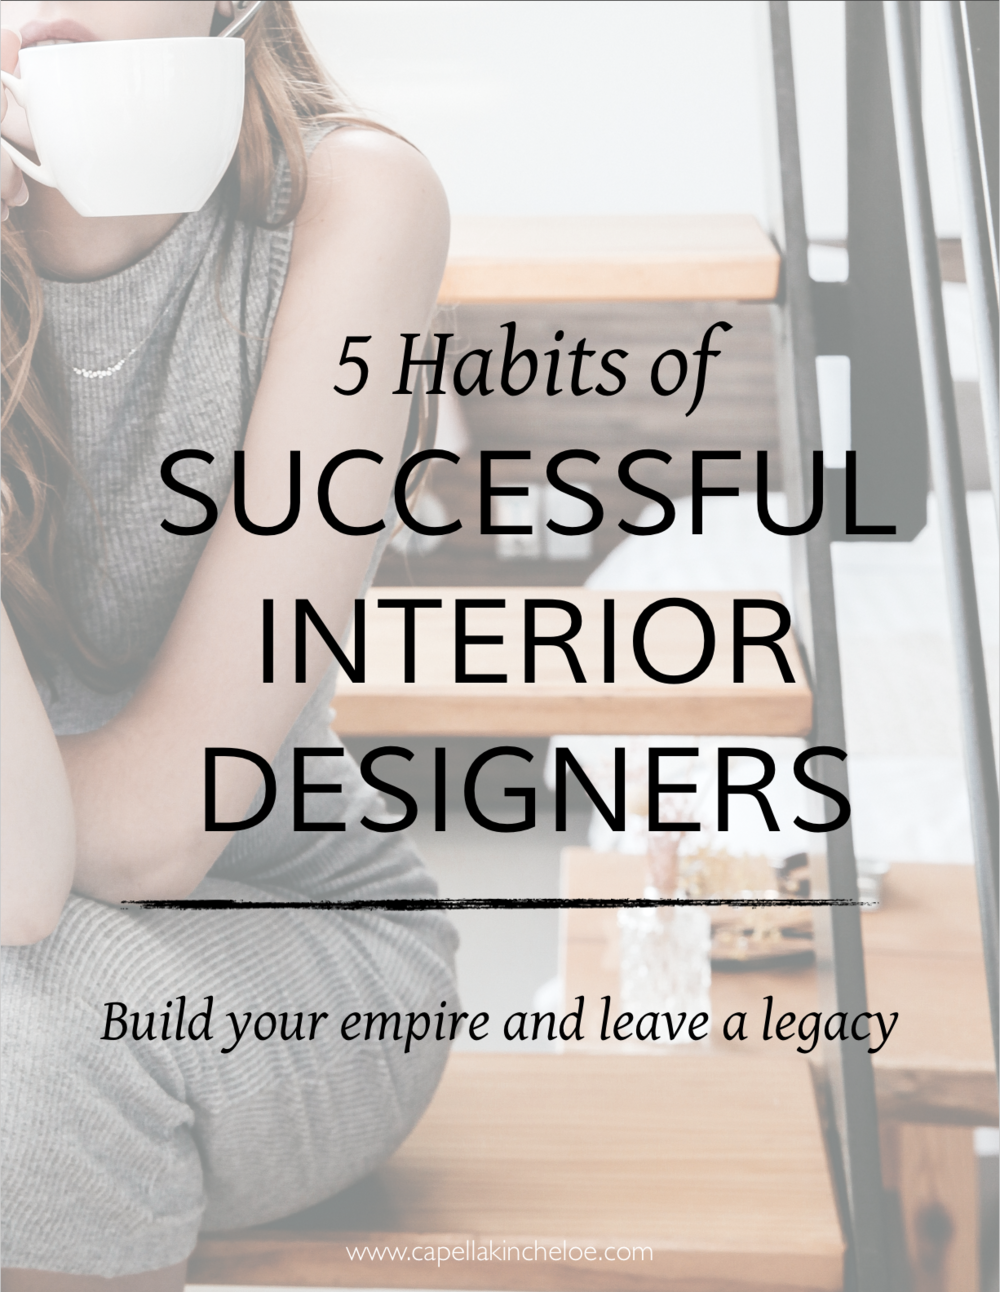 What Does It Take To Be A Successful Interior Designer? U0026nbsp;THere Is No